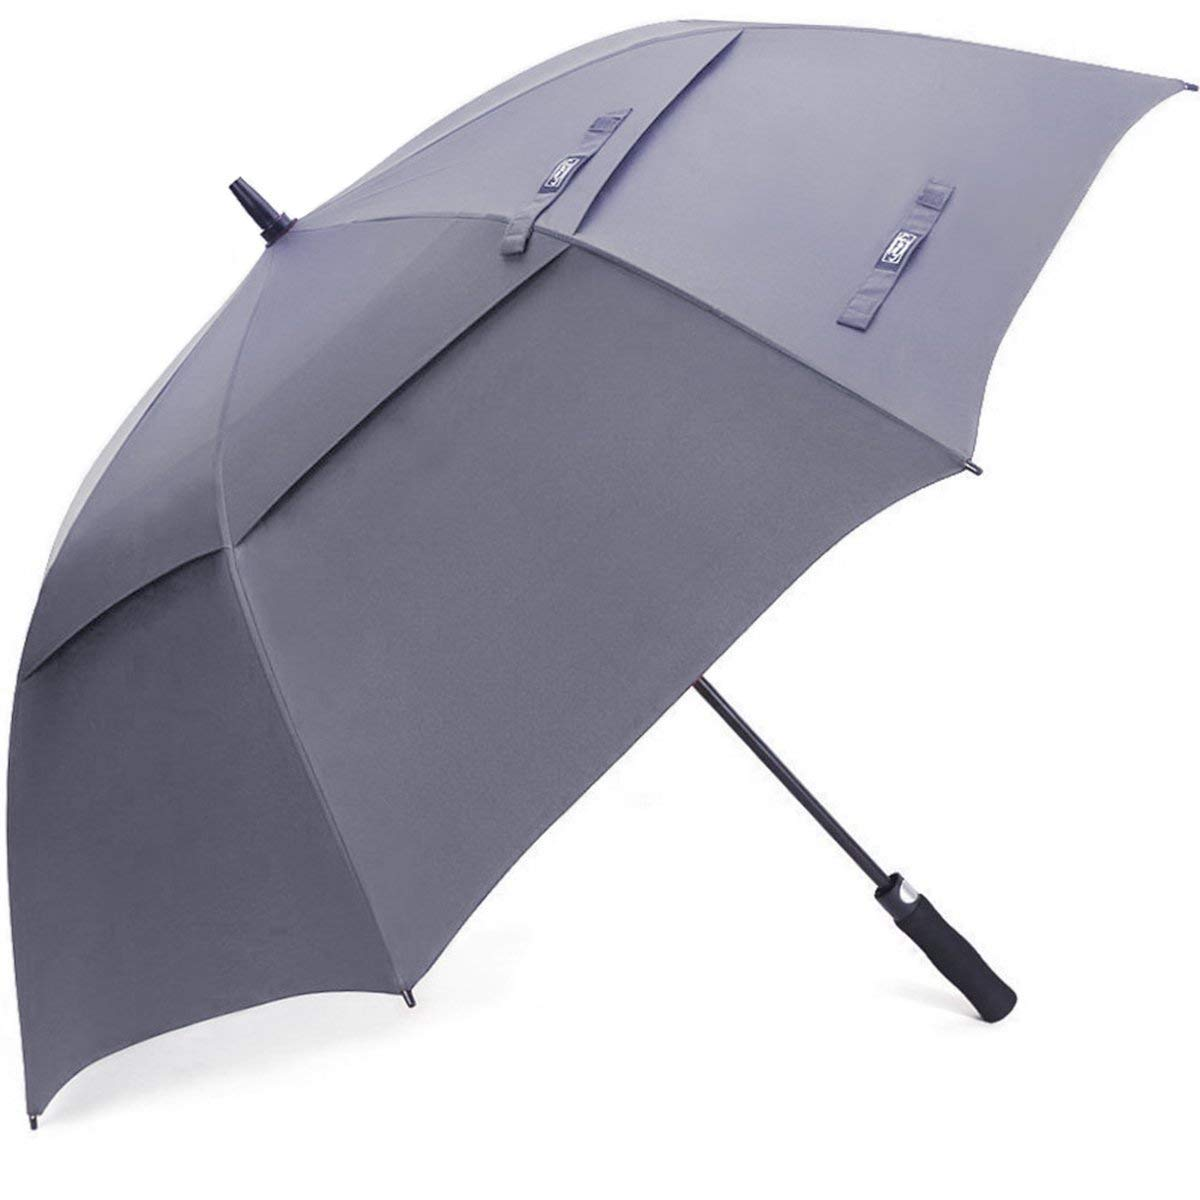 G4Free 54 Inch Semi-Automatic Open Golf Umbrella Extra Large Oversize Windproof Double Canopy Vented Waterproof Stick Umbrellas Gray